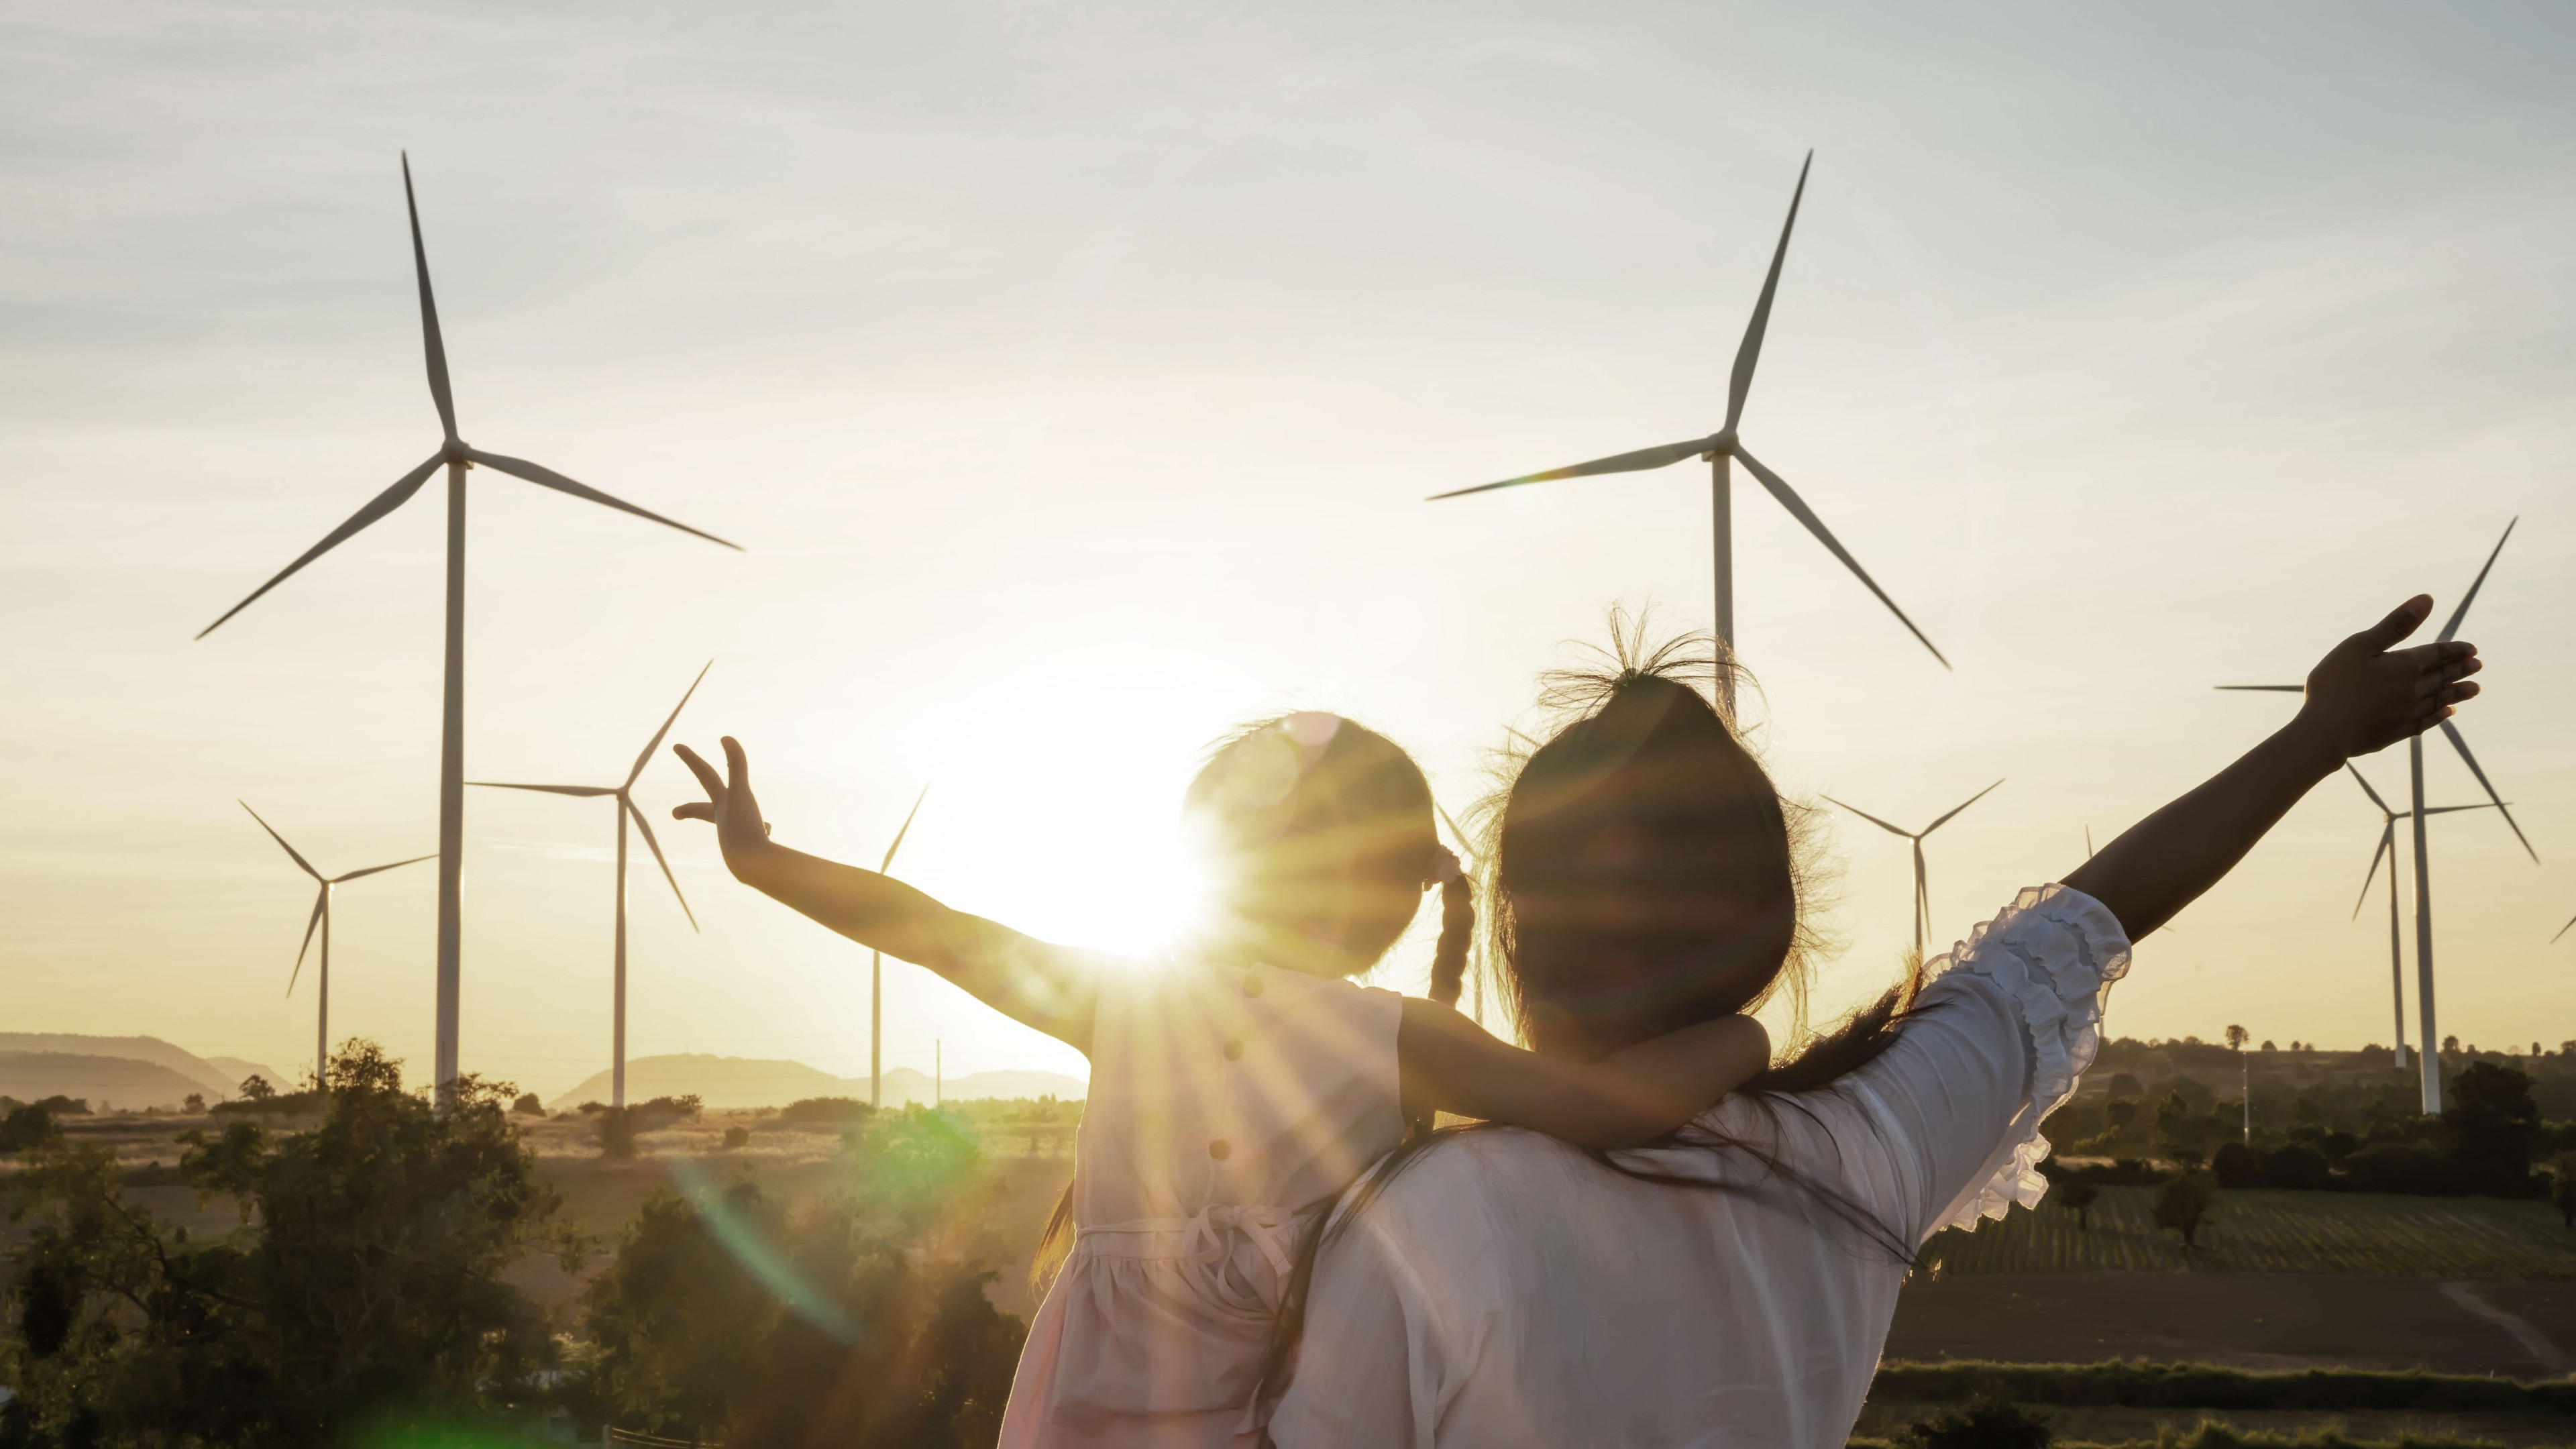 Bearded man in glasses kneeling on floor and catching ball while teaching boy to play football in cozy room at home